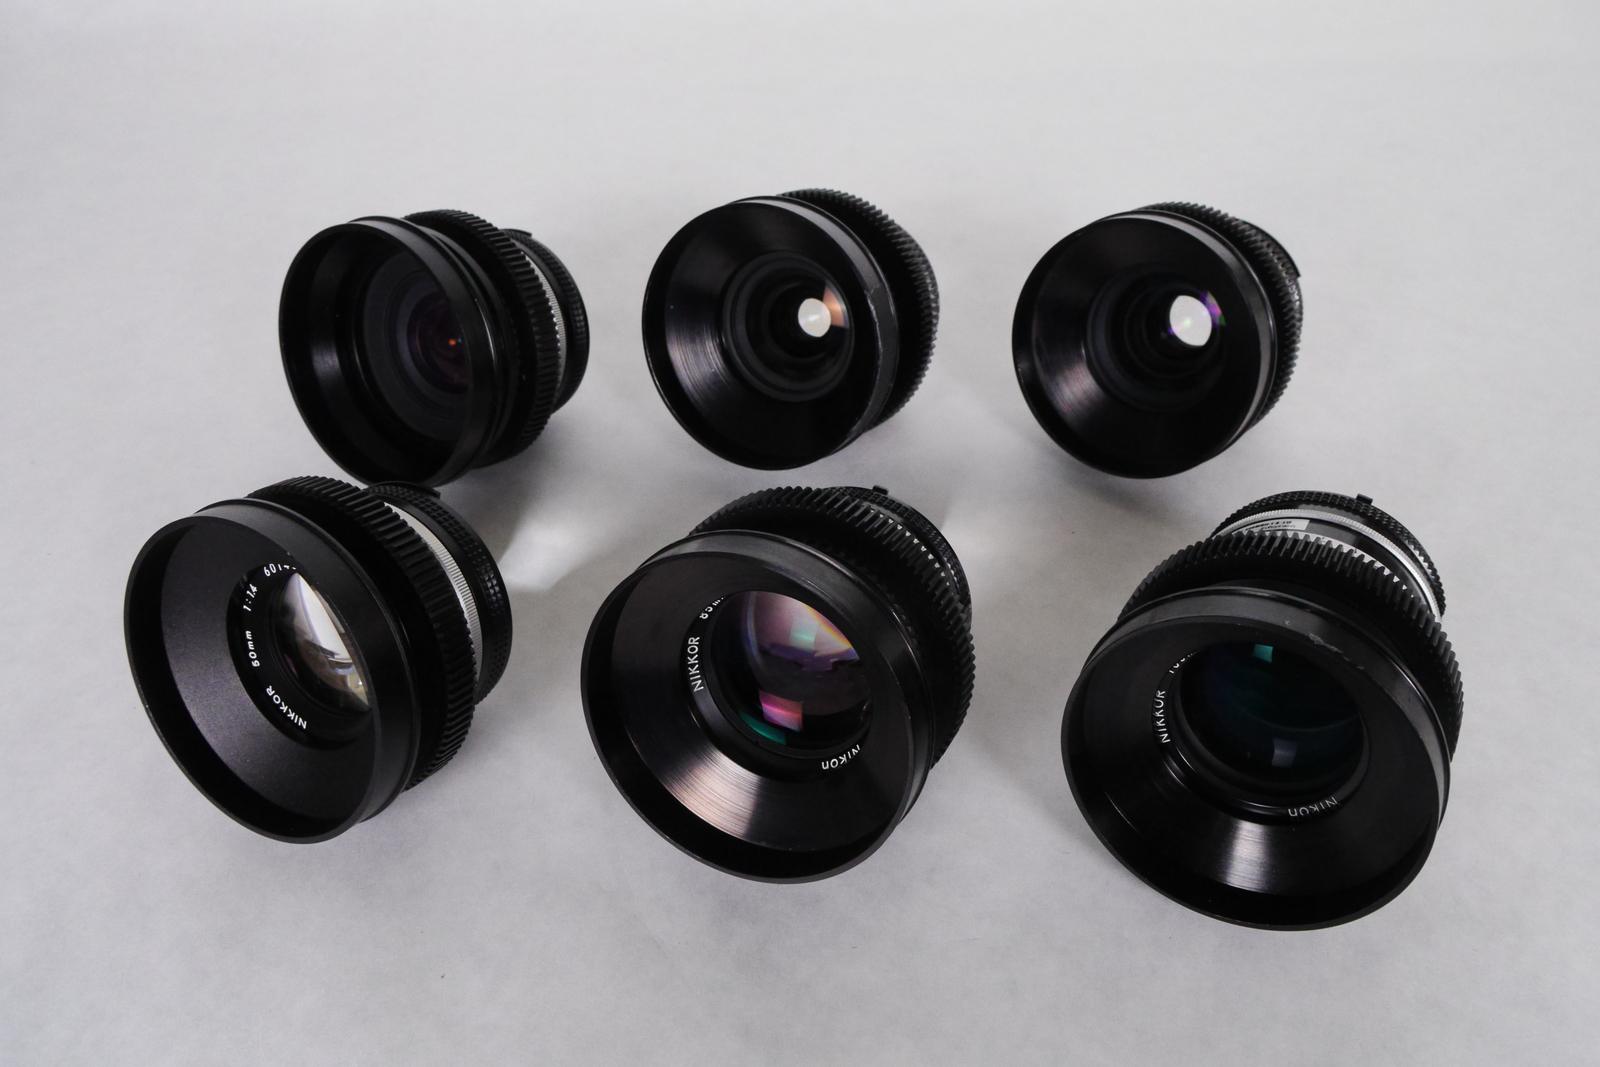 Rent a Nikon Cine-Mod 6 Lens Set, Best Prices | ShareGrid Los Angeles